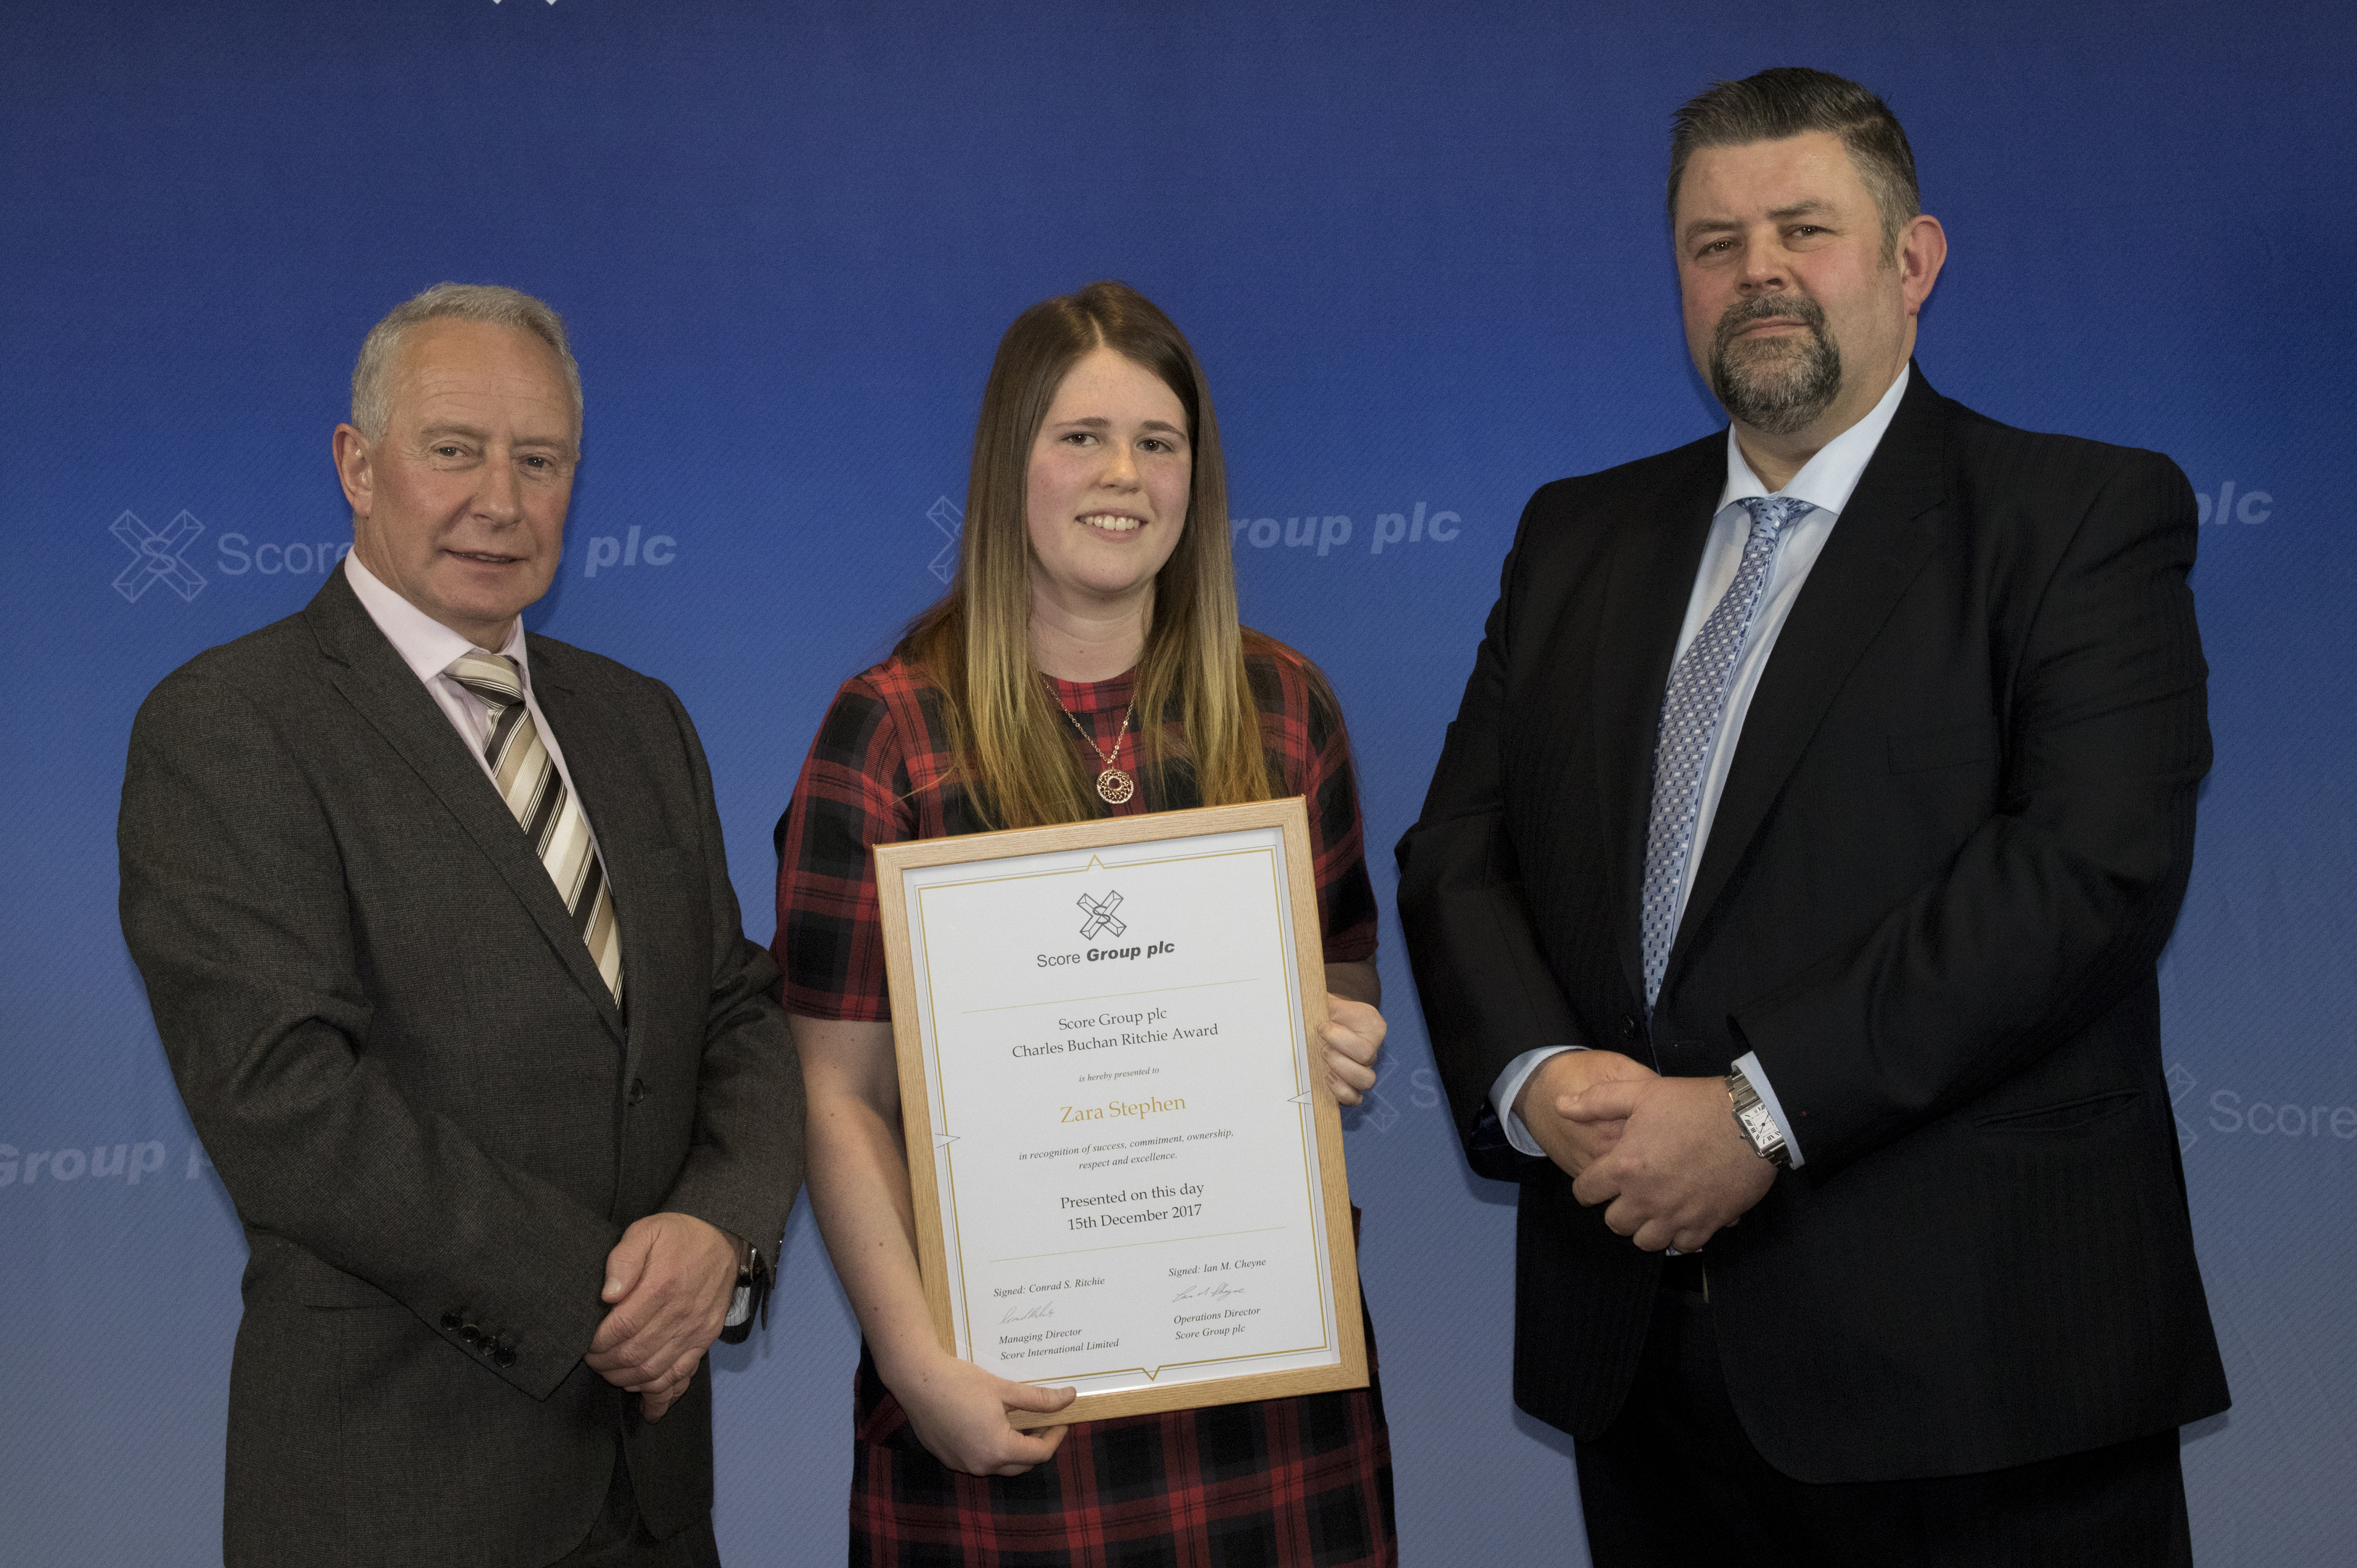 The Charles Buchan Ritchie Award was presented to Zara Stephen, pictured with Score Group operations director Ian Cheyne and Conrad Ritchie (right)